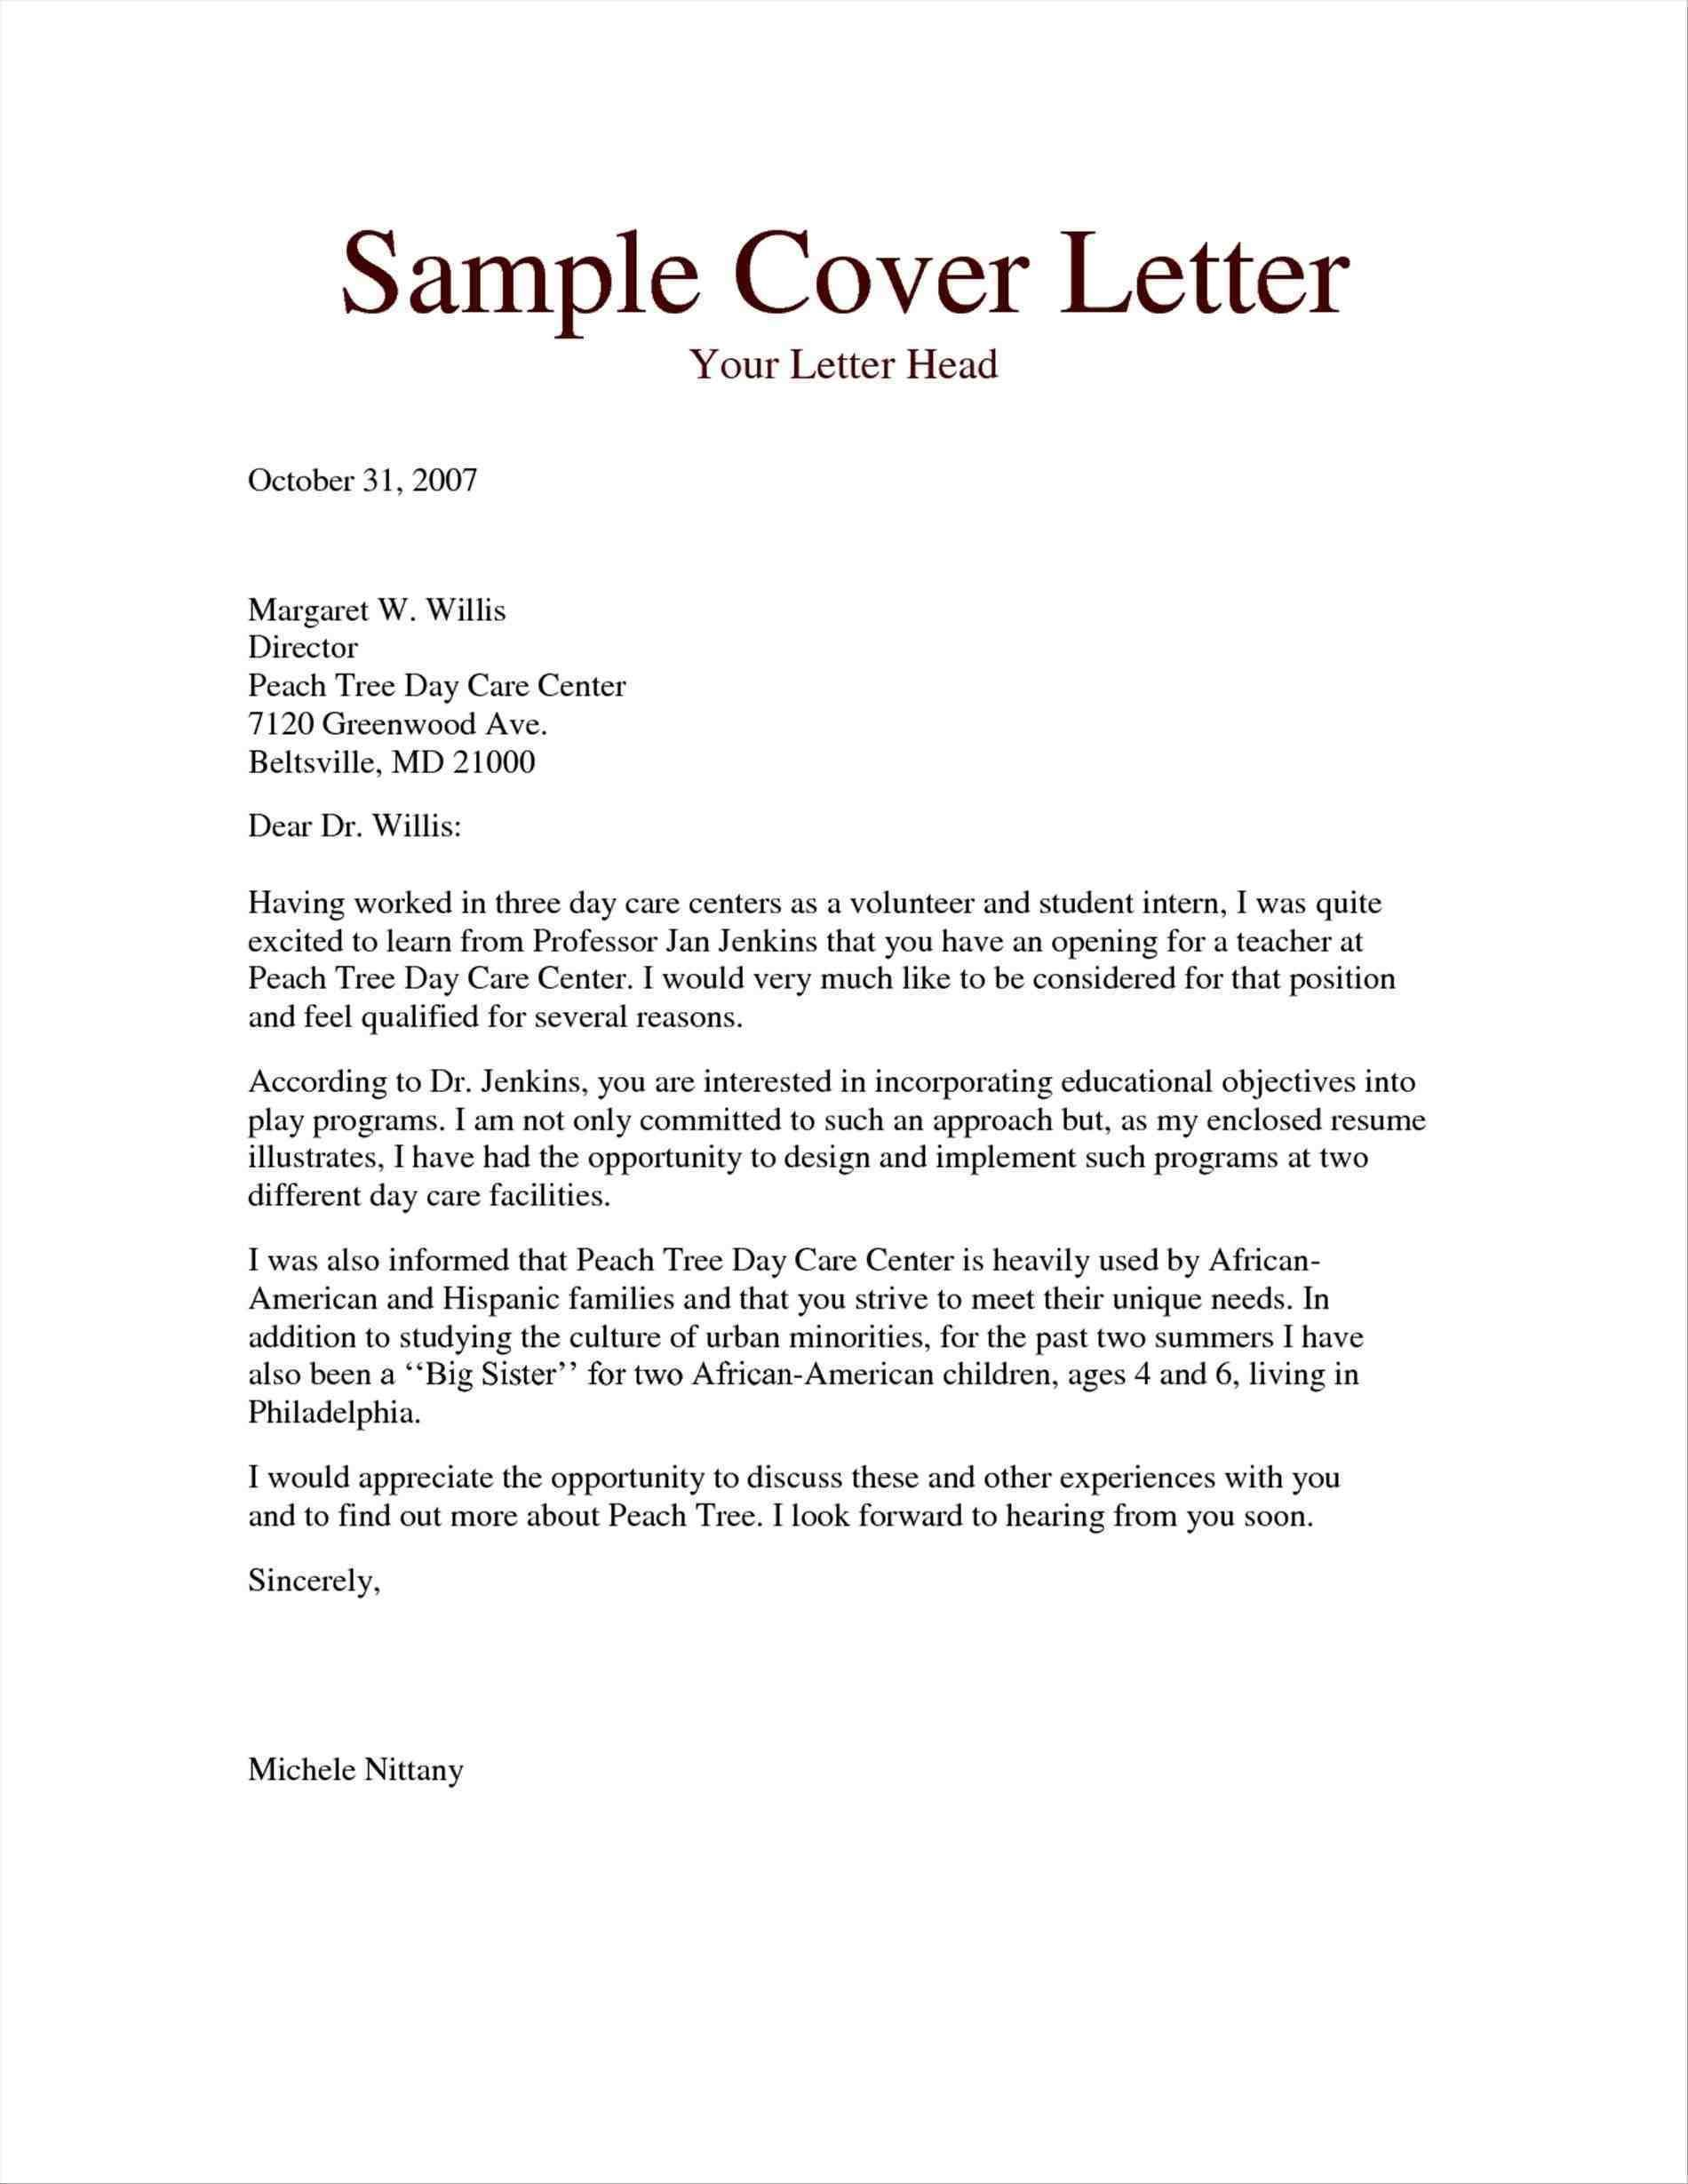 30 Free Cover Letter Template Pin Joanna Keysa On Tamplate Pinterest Resume Sample